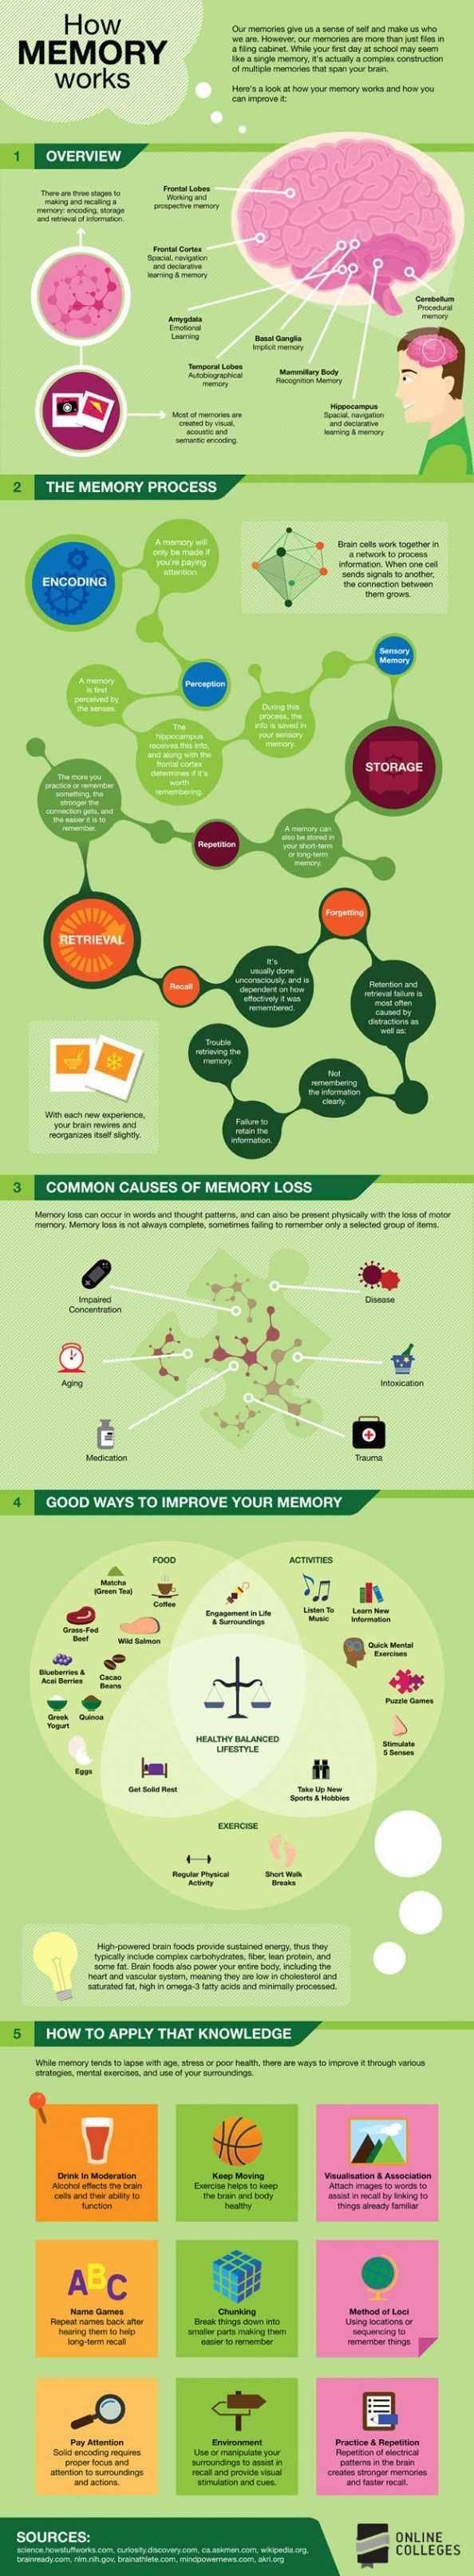 "How Memory Works Infographic Our memories are an integral part of our lives and experiences, and enrich our existence. They let us remember ""the good old days,"" the incredible times spent with family and friends, and enjoy special moments over and over."